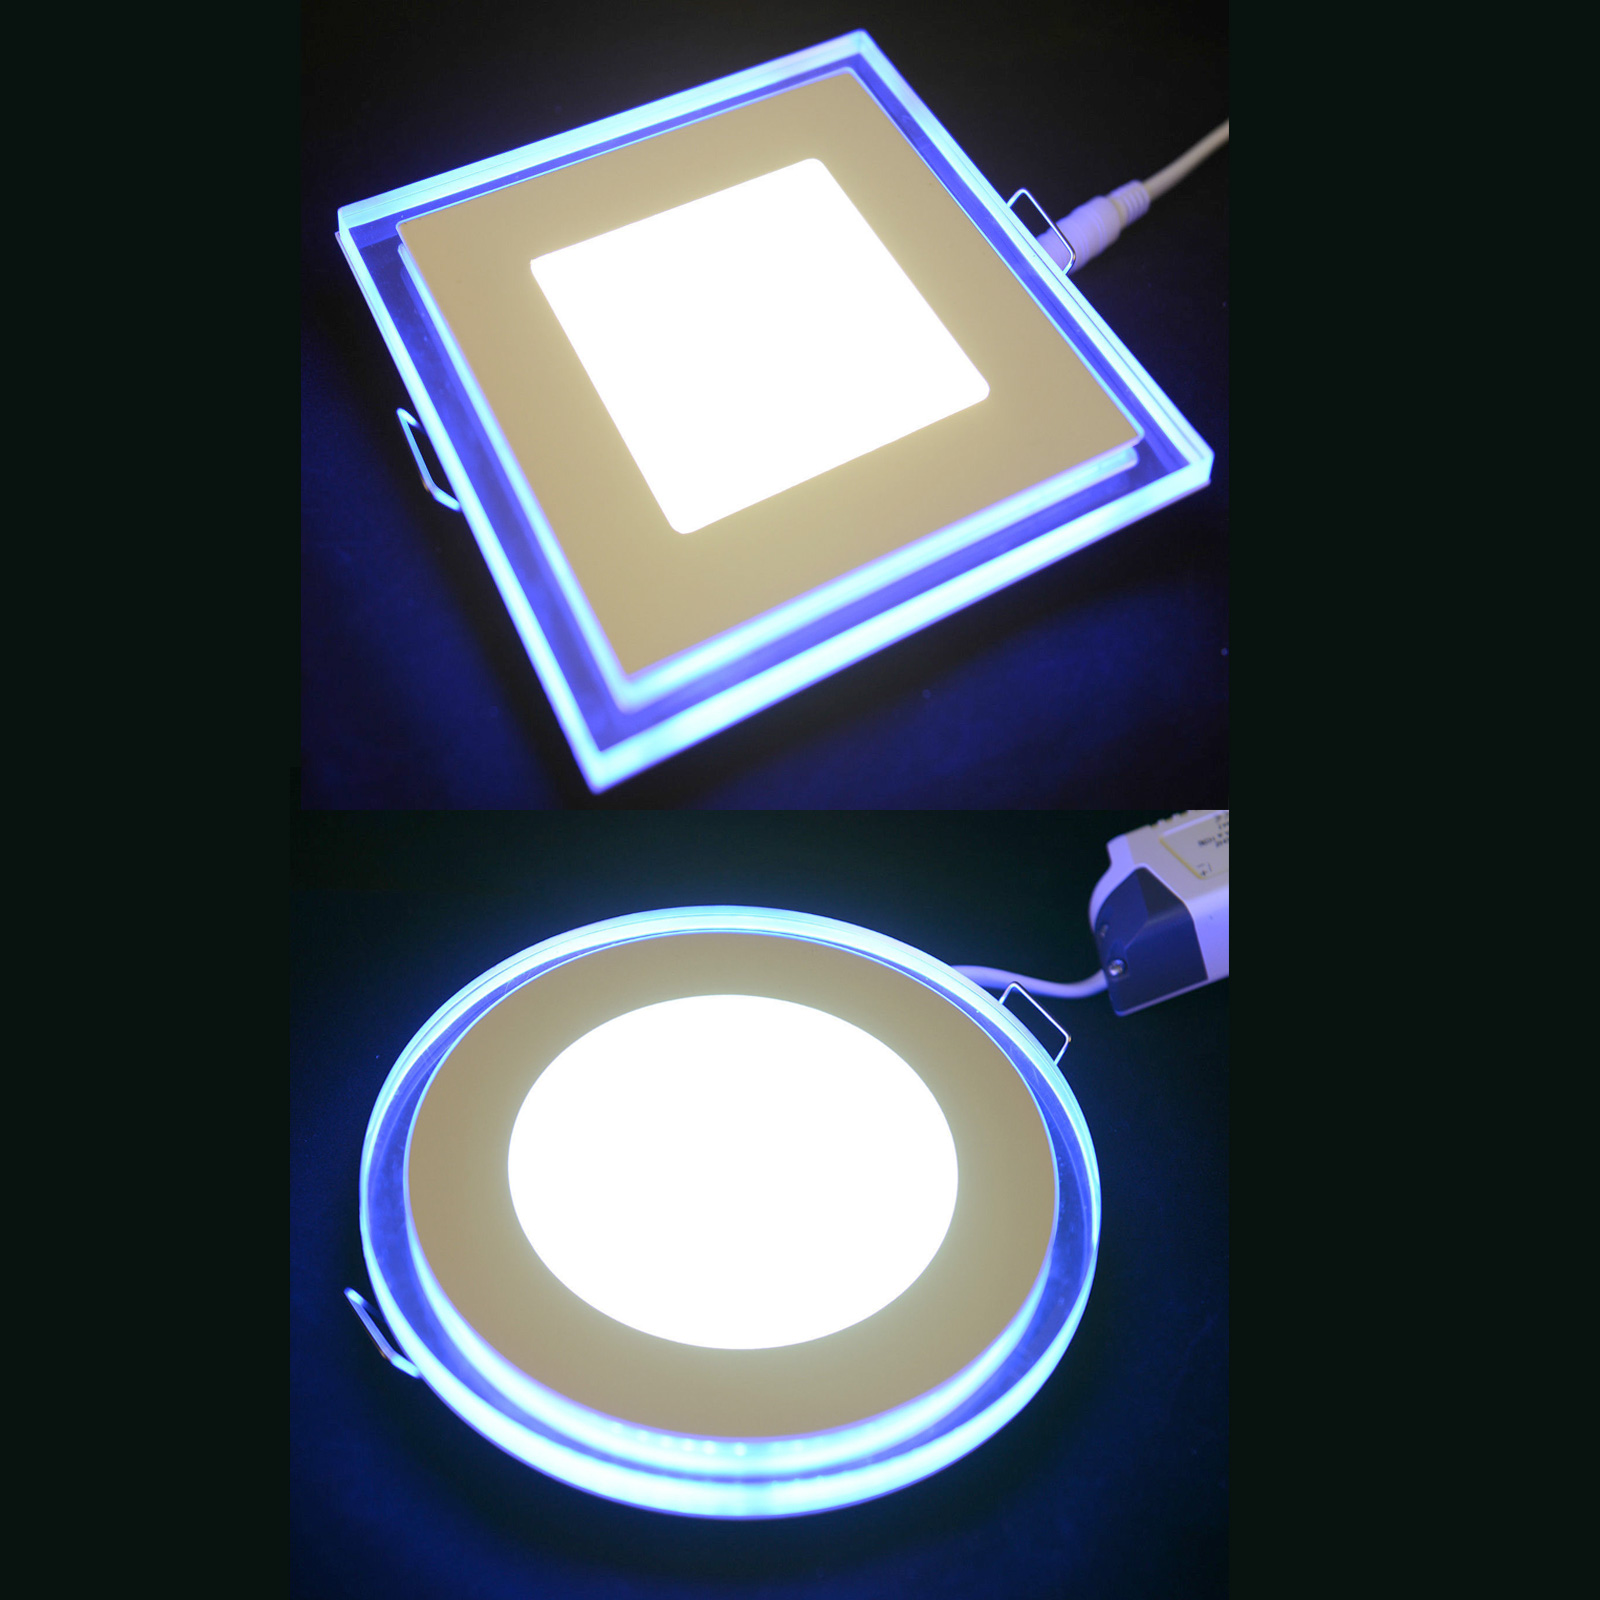 7w Led Recessed Ceiling Panel Flat Down Lights Bulb 3 Mode Light Switch Control